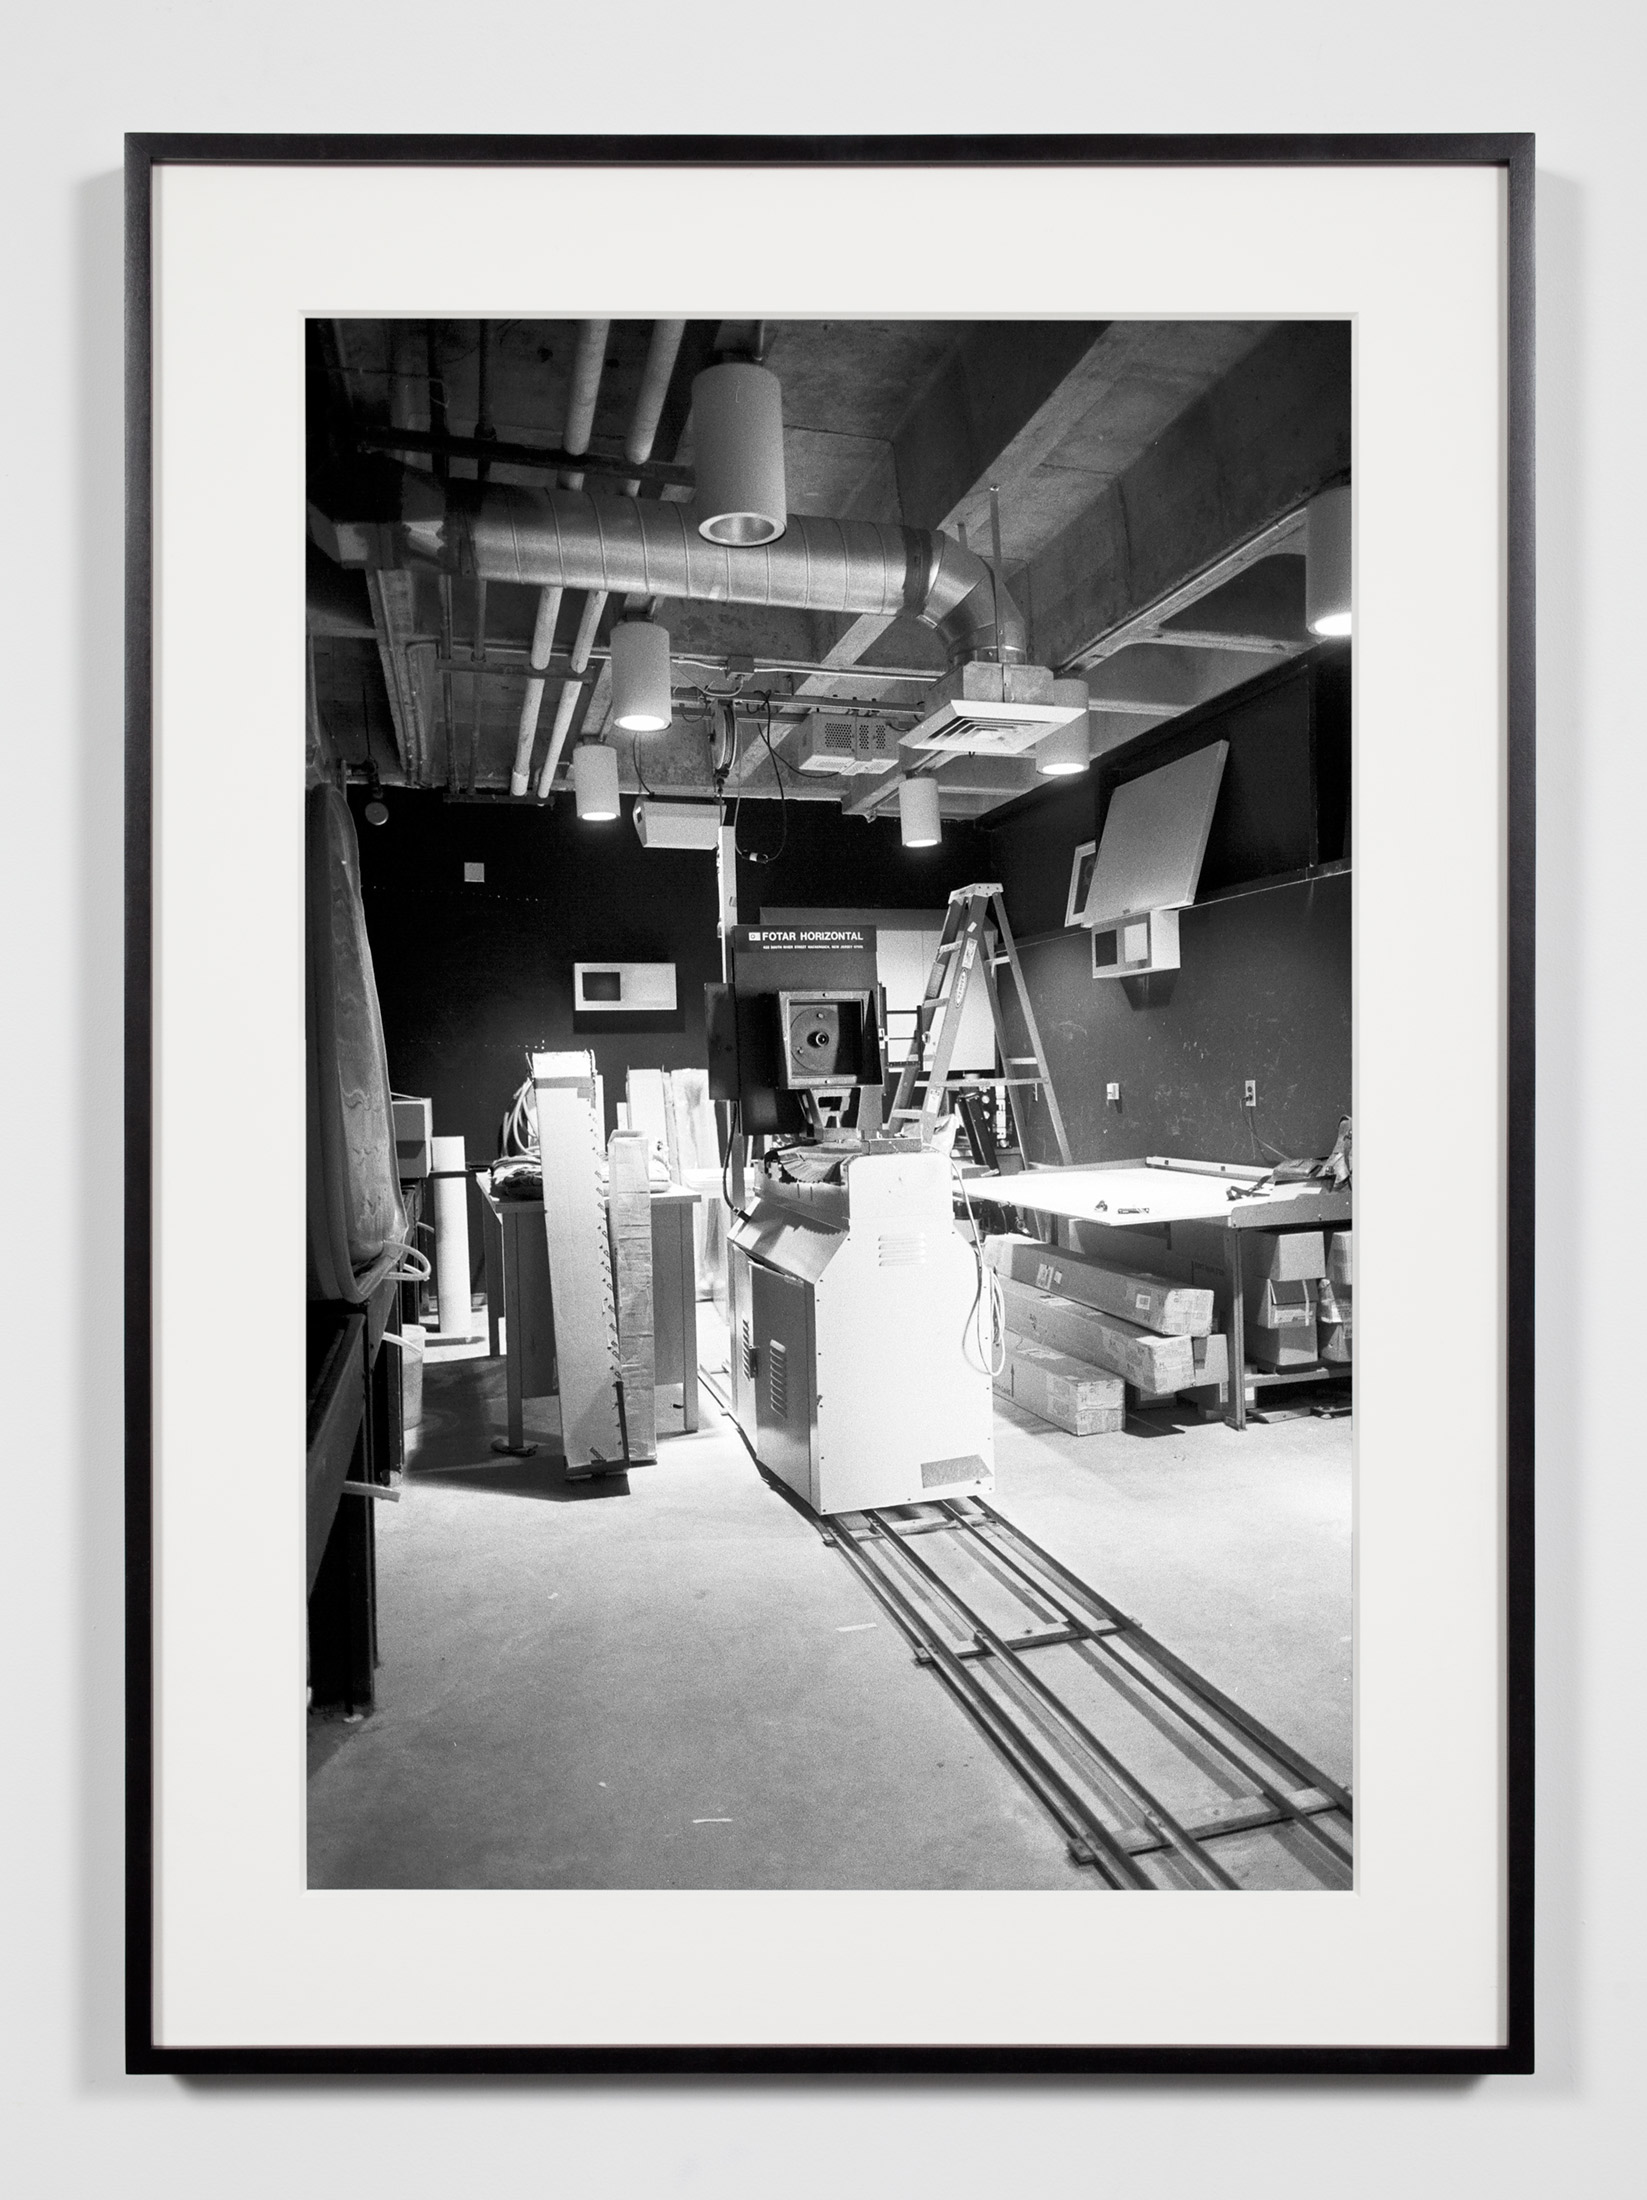 University Darkroom, 8 x 10 Horizontal Enlarger, Irvine, California, July 18, 2008    2011   Epson Ultrachrome K3 archival ink jet print on Hahnemühle Photo Rag paper  36 3/8 x 26 3/8 inches   A Diagram of Forces, 2011